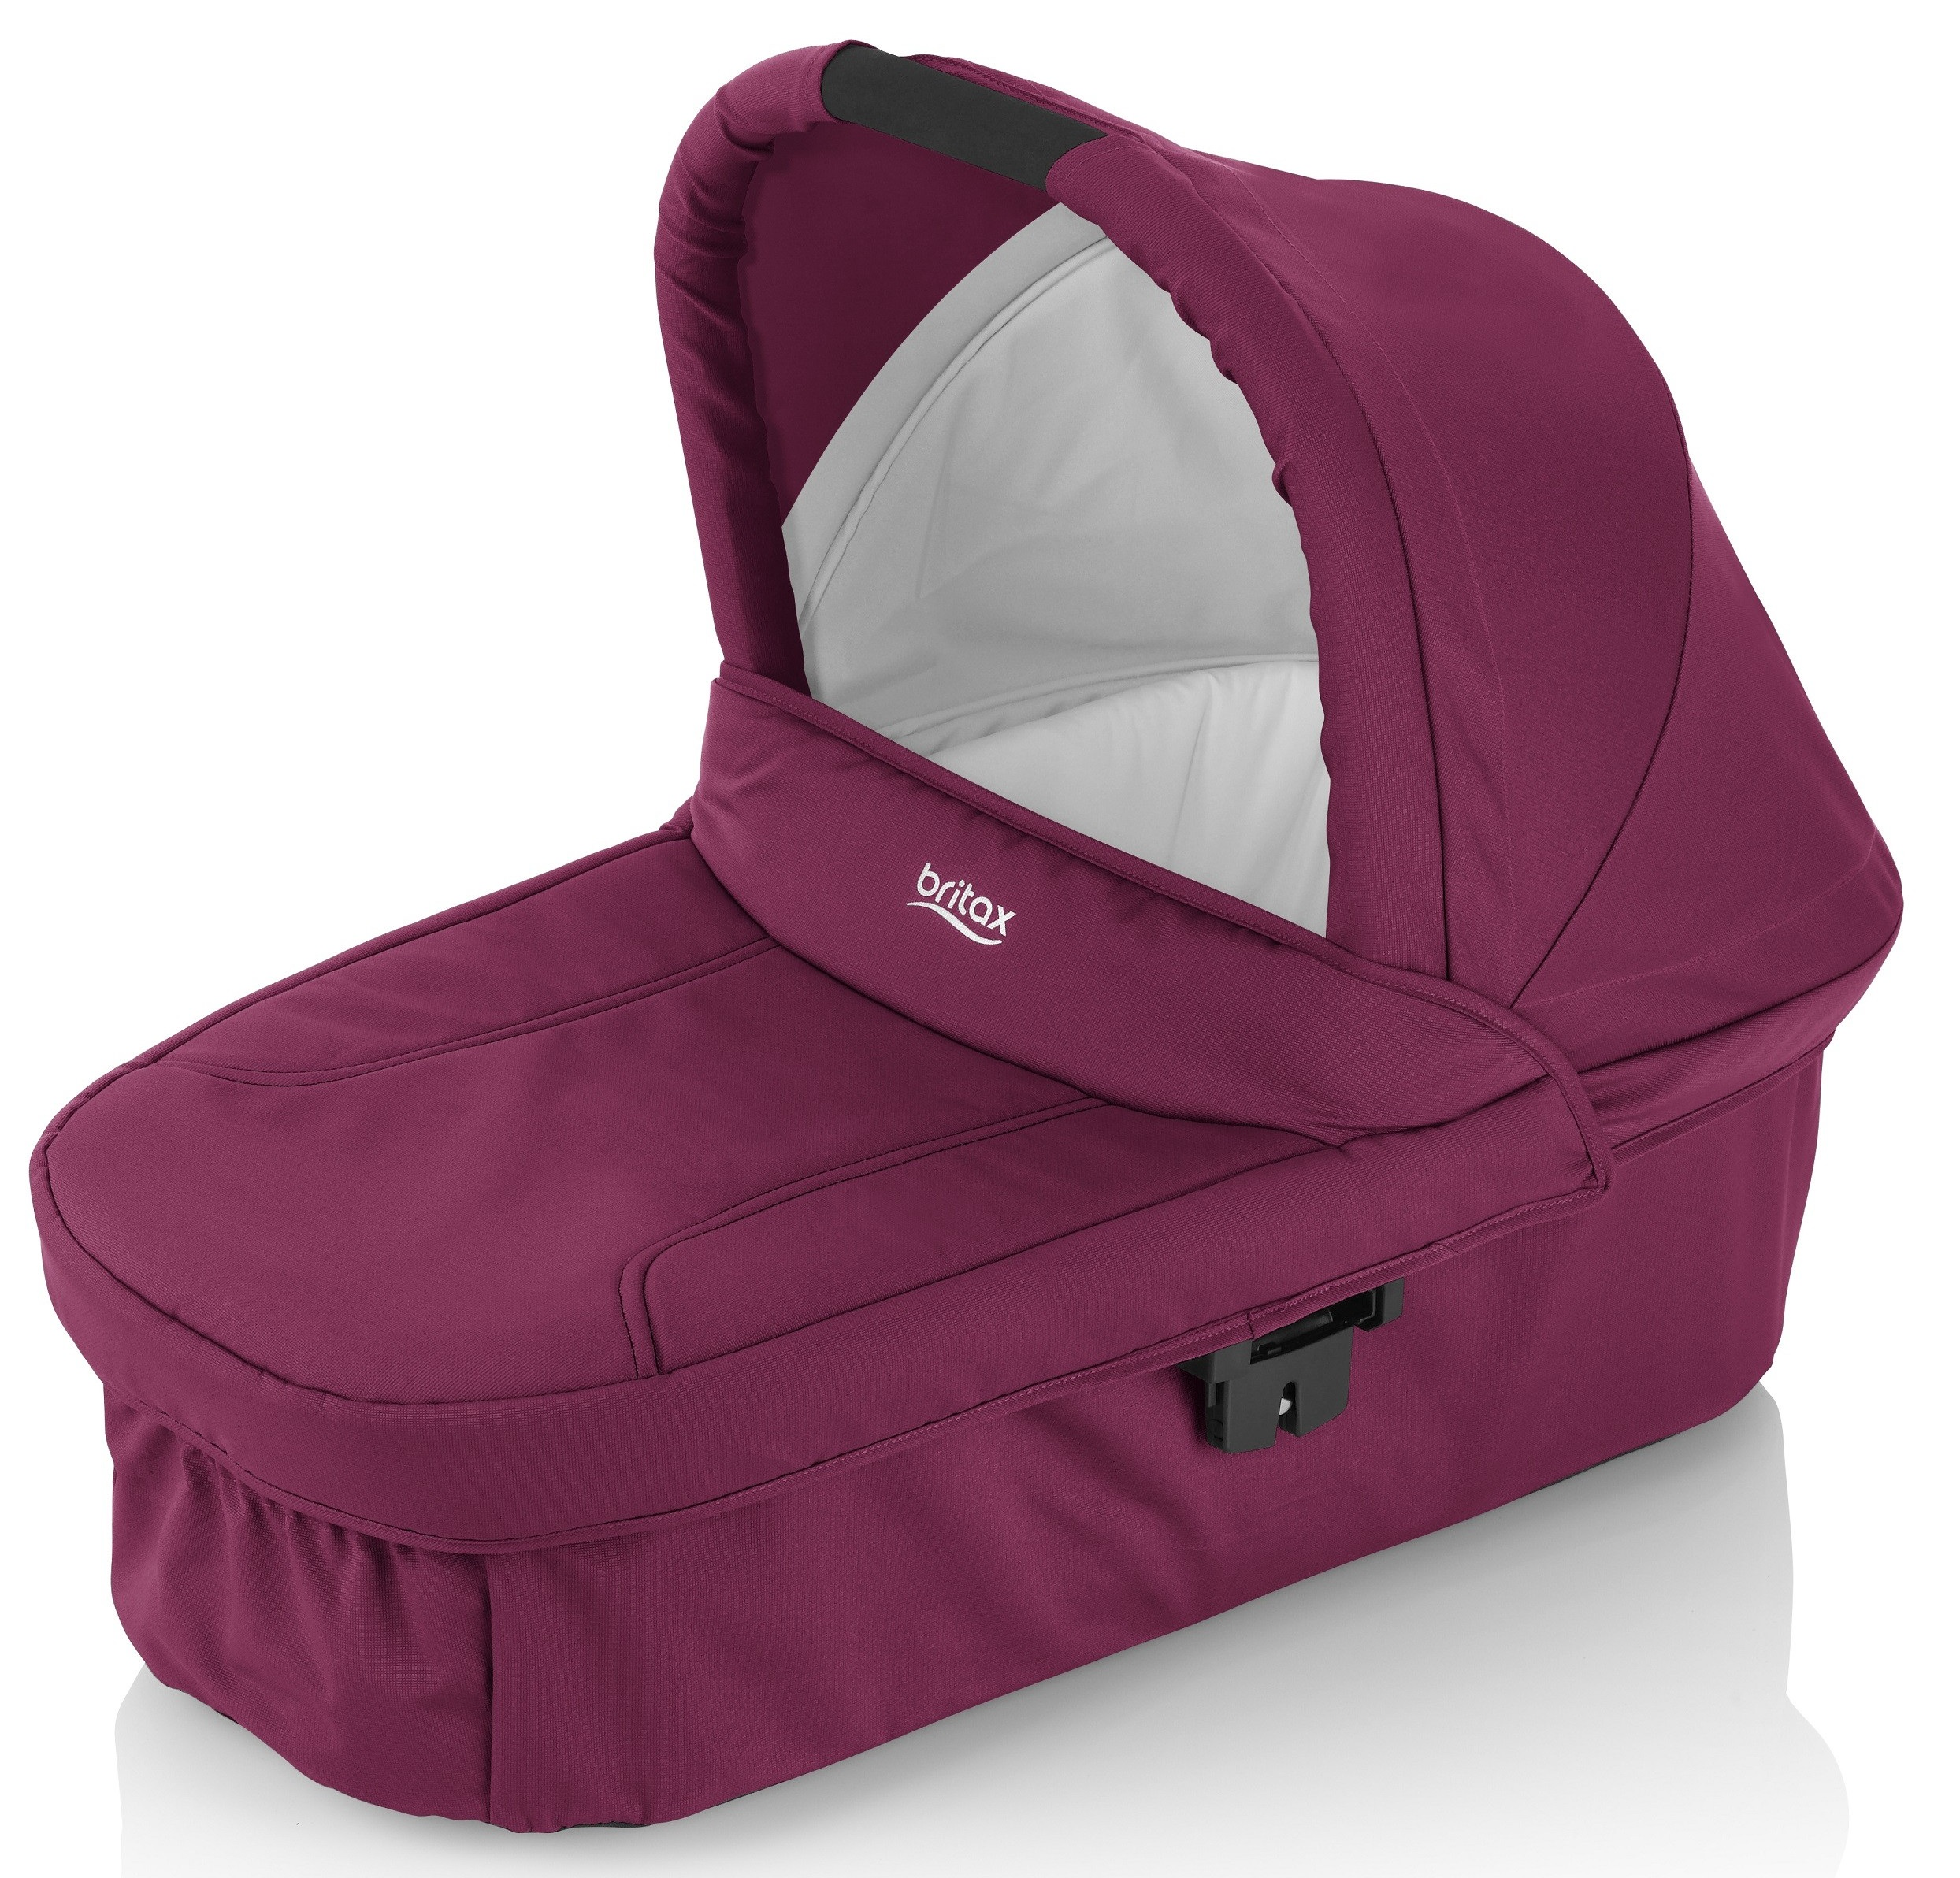 BRITAX Hluboká korba B-Agile/B-Motion/Smile/B-Ready – Wine Red 2018